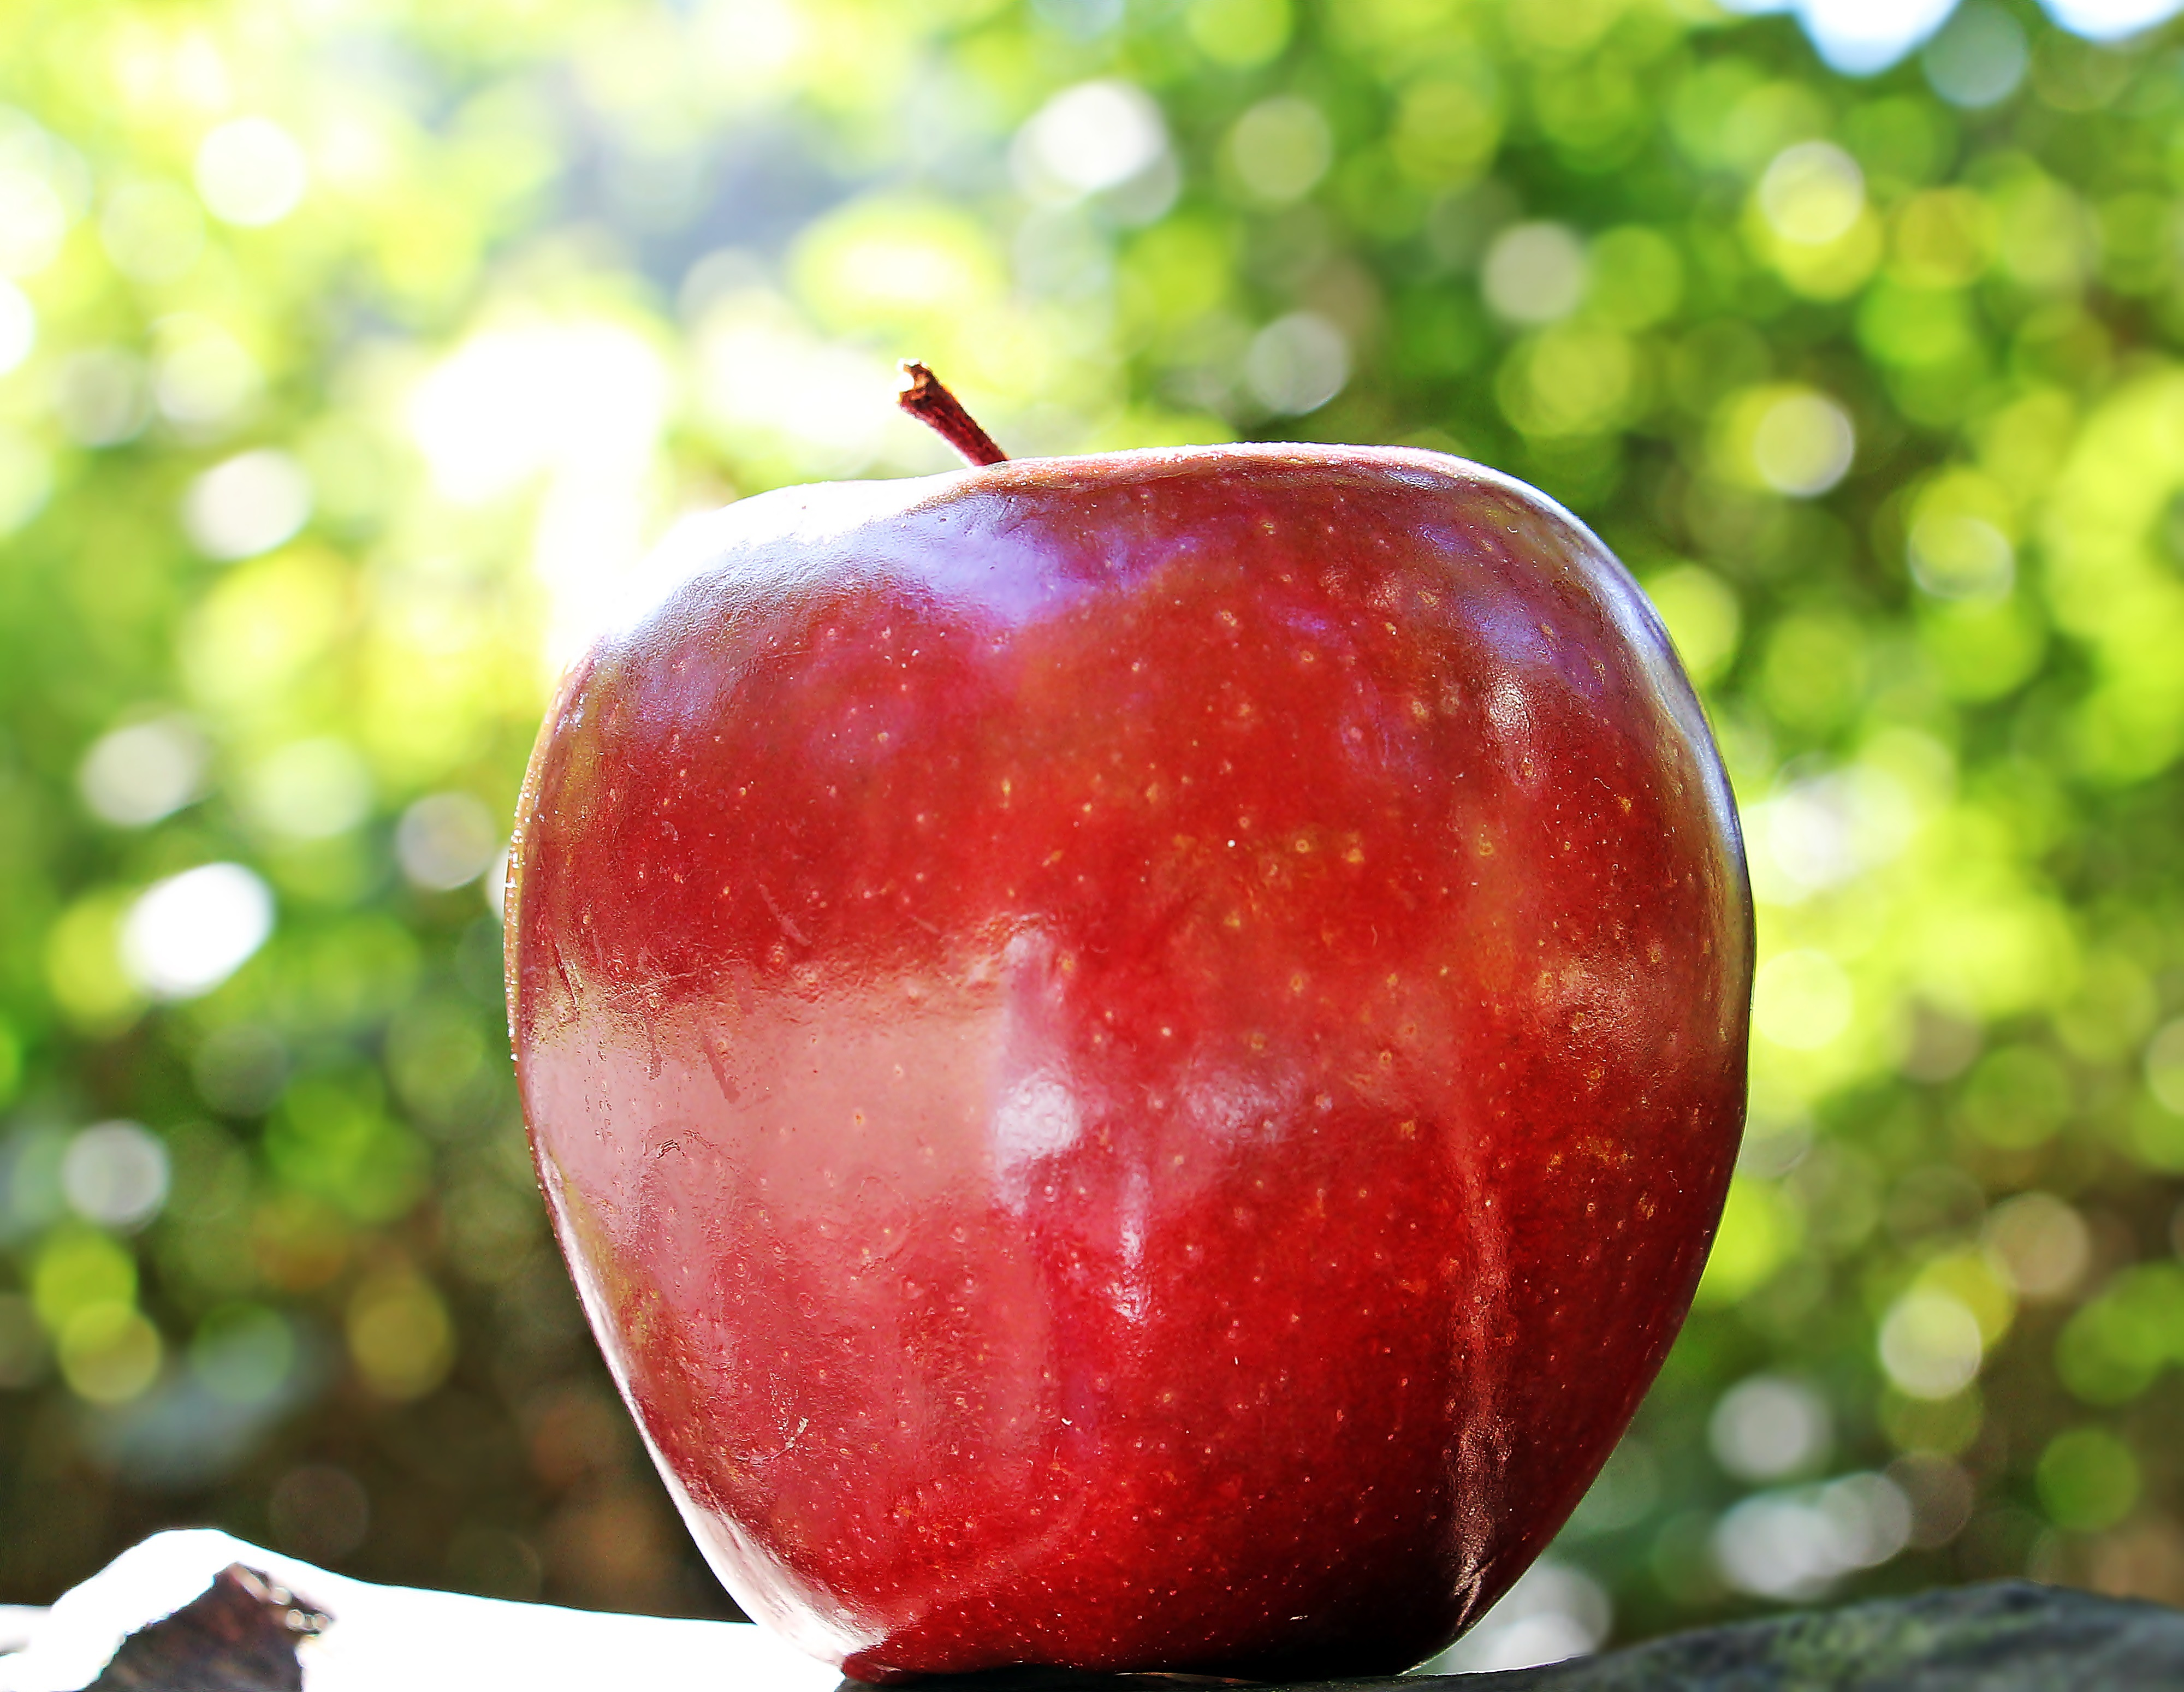 124957 Screensavers and Wallpapers Apple for phone. Download Food, Apple, Fruit, Ripe, Close-Up pictures for free